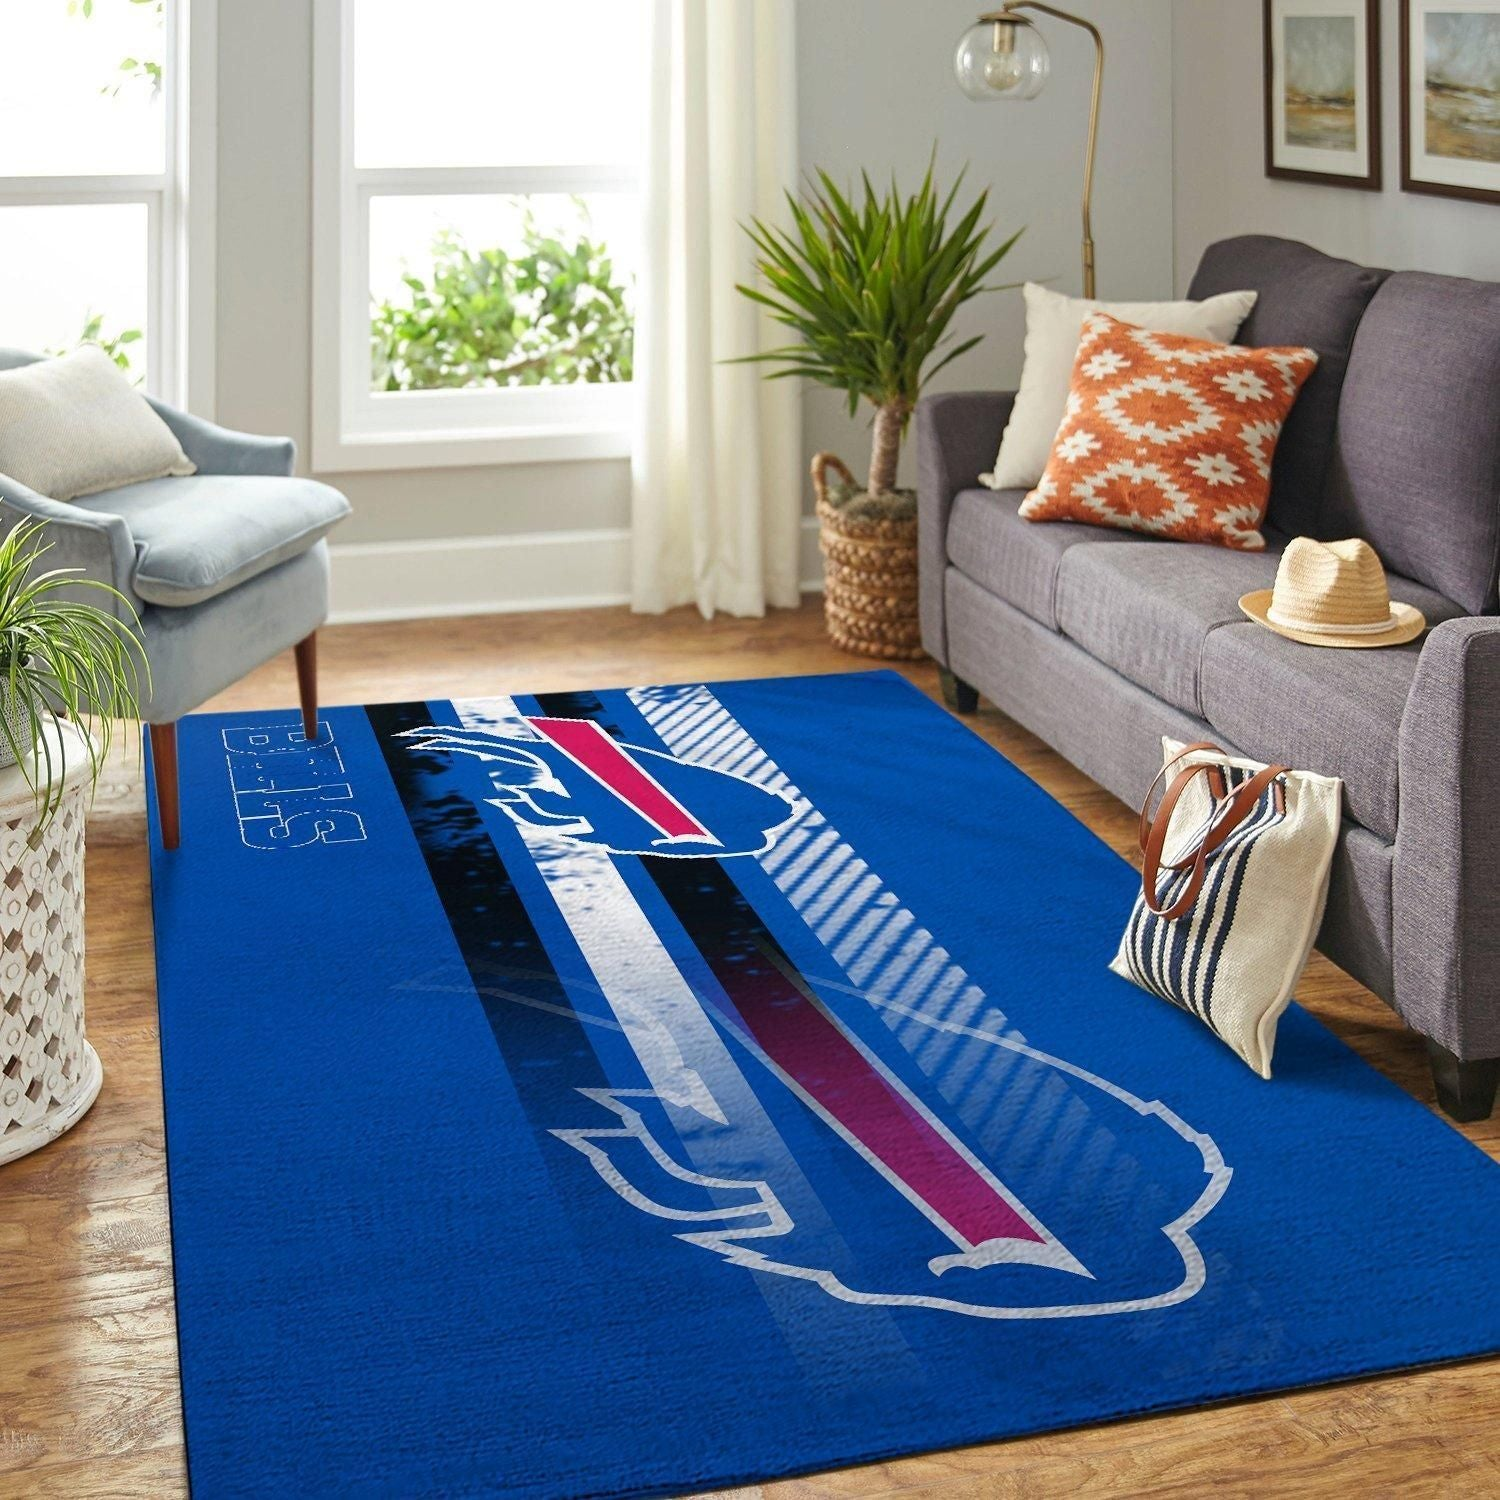 Buffalo Bills Area Rugs NFL Football Team Living Room Carpet Carpet Sport Custom Area Floor Home Decor